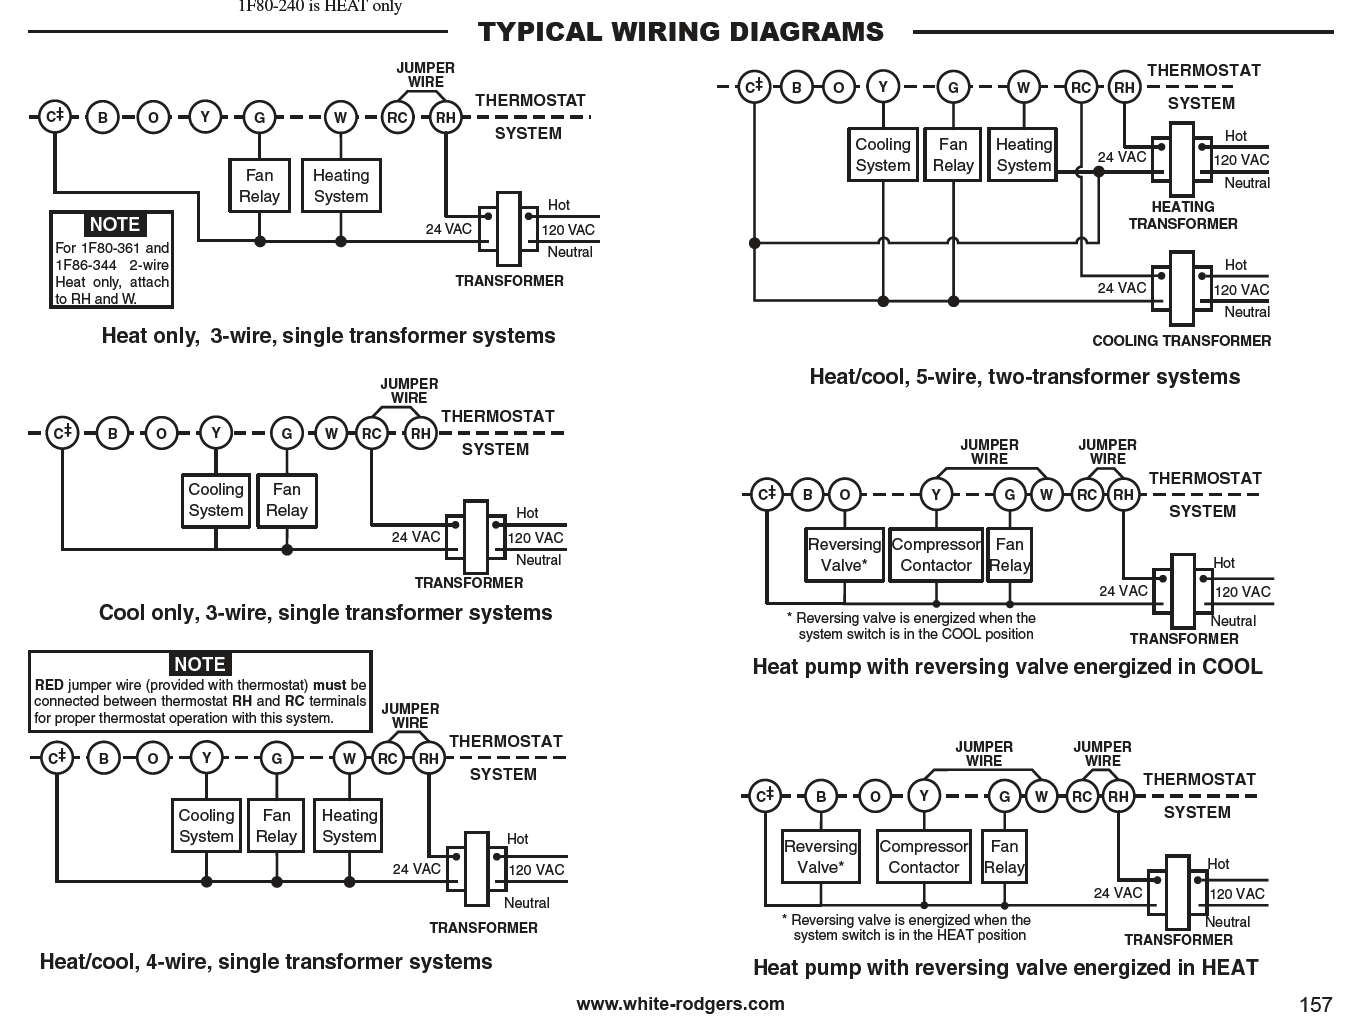 Emerson White Rodgers 1F80 series thermostats typical wiring diagrams at  Inspectapedia.com cited in detail